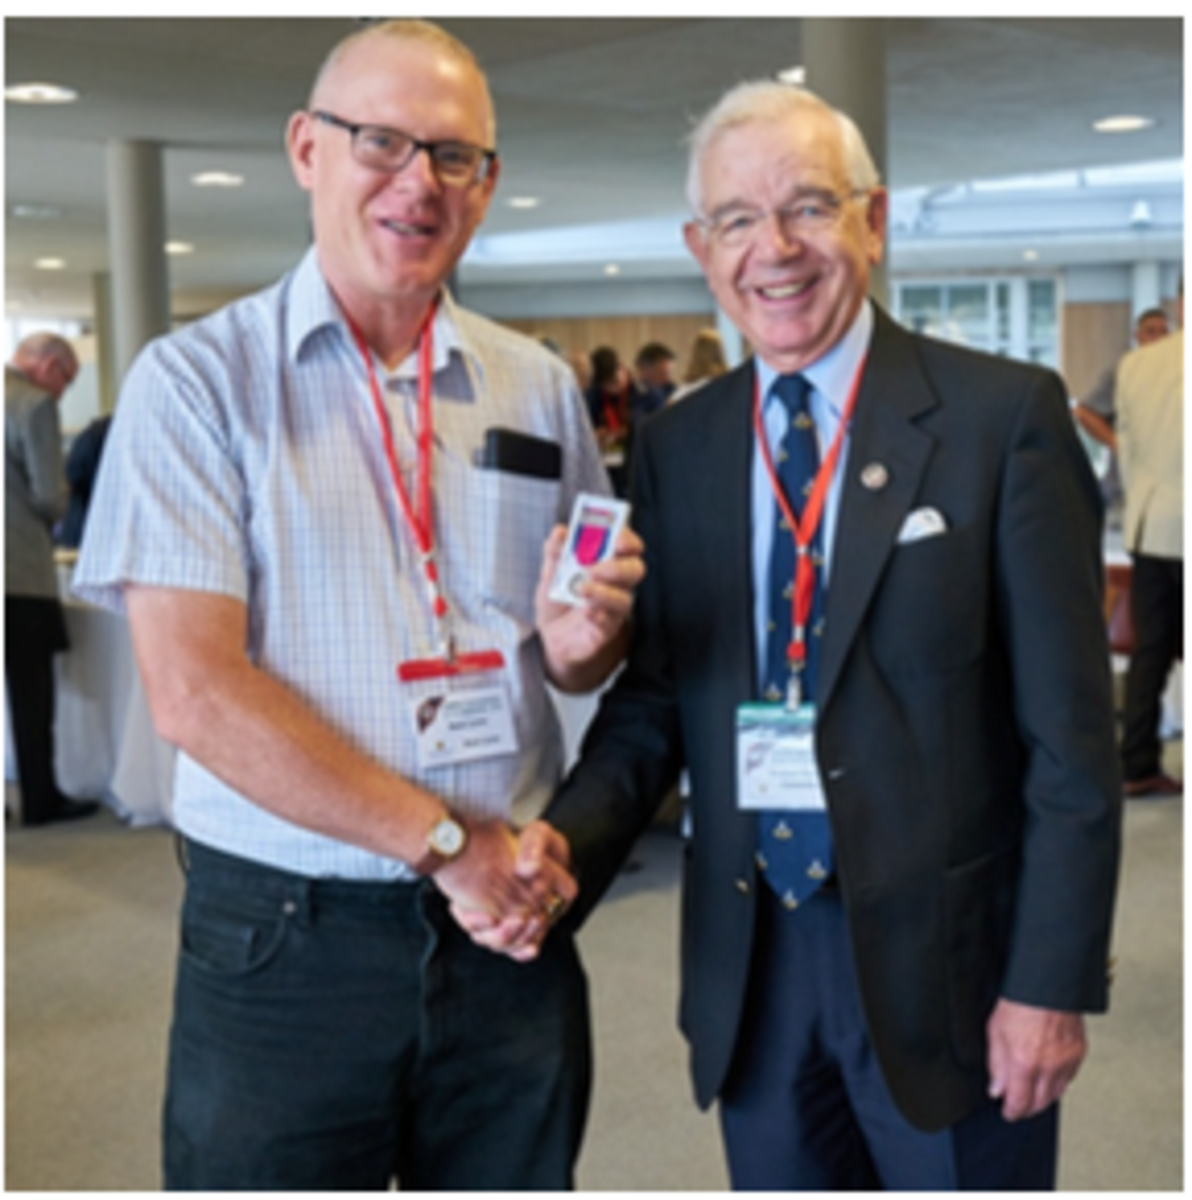 Fair organizer Mark Carter receives his OMRS medal from Society President Air Commodore Graham Pitchfork